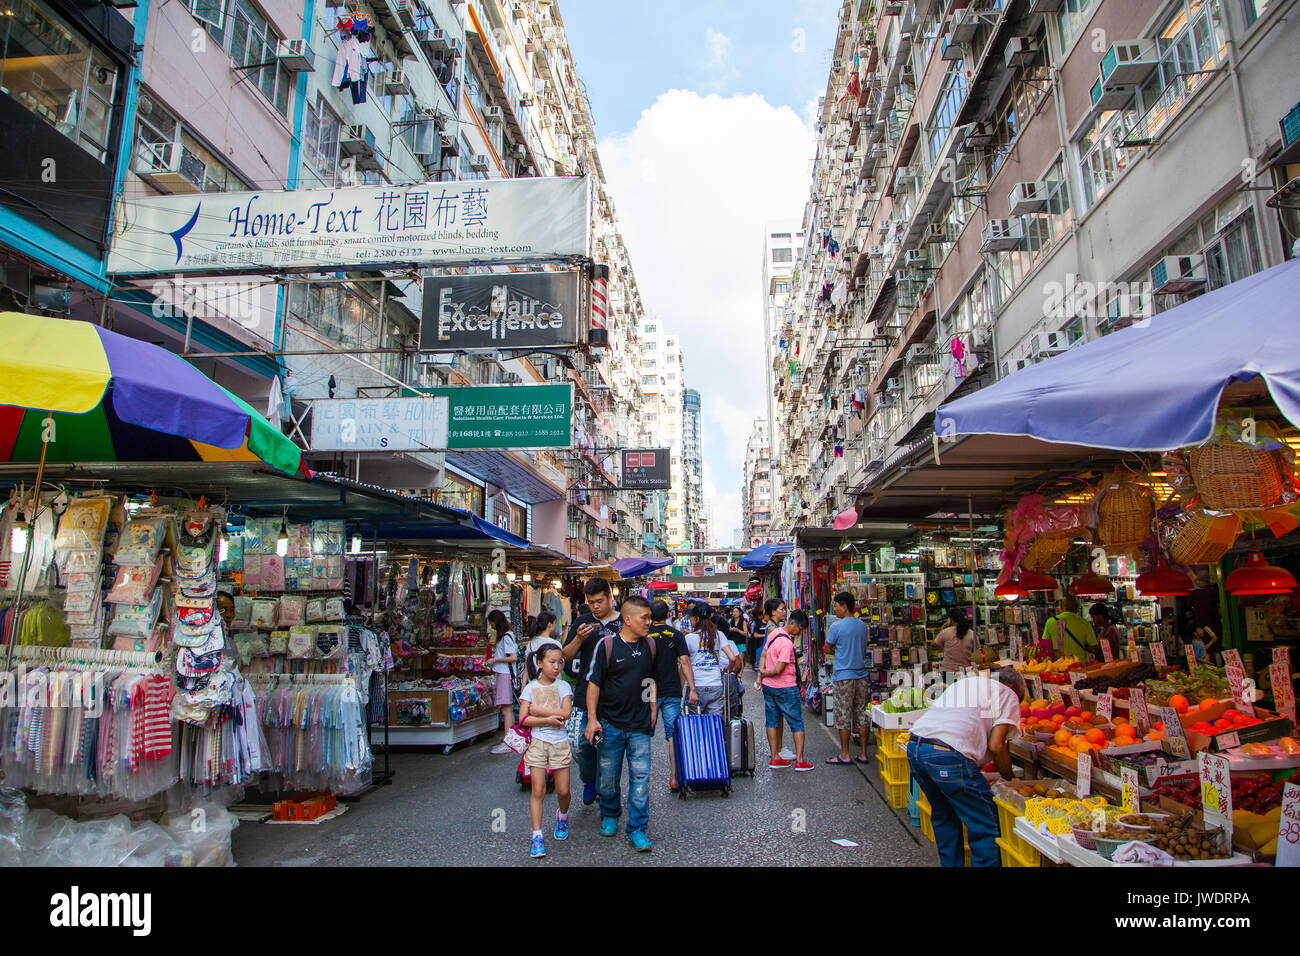 HONG KONG - JULY 10, 2017: Fa Yuen Street in Mong Kok is a popular street market where visitors go to shop for cheap fashionable clothing, homewares,  - Stock Image